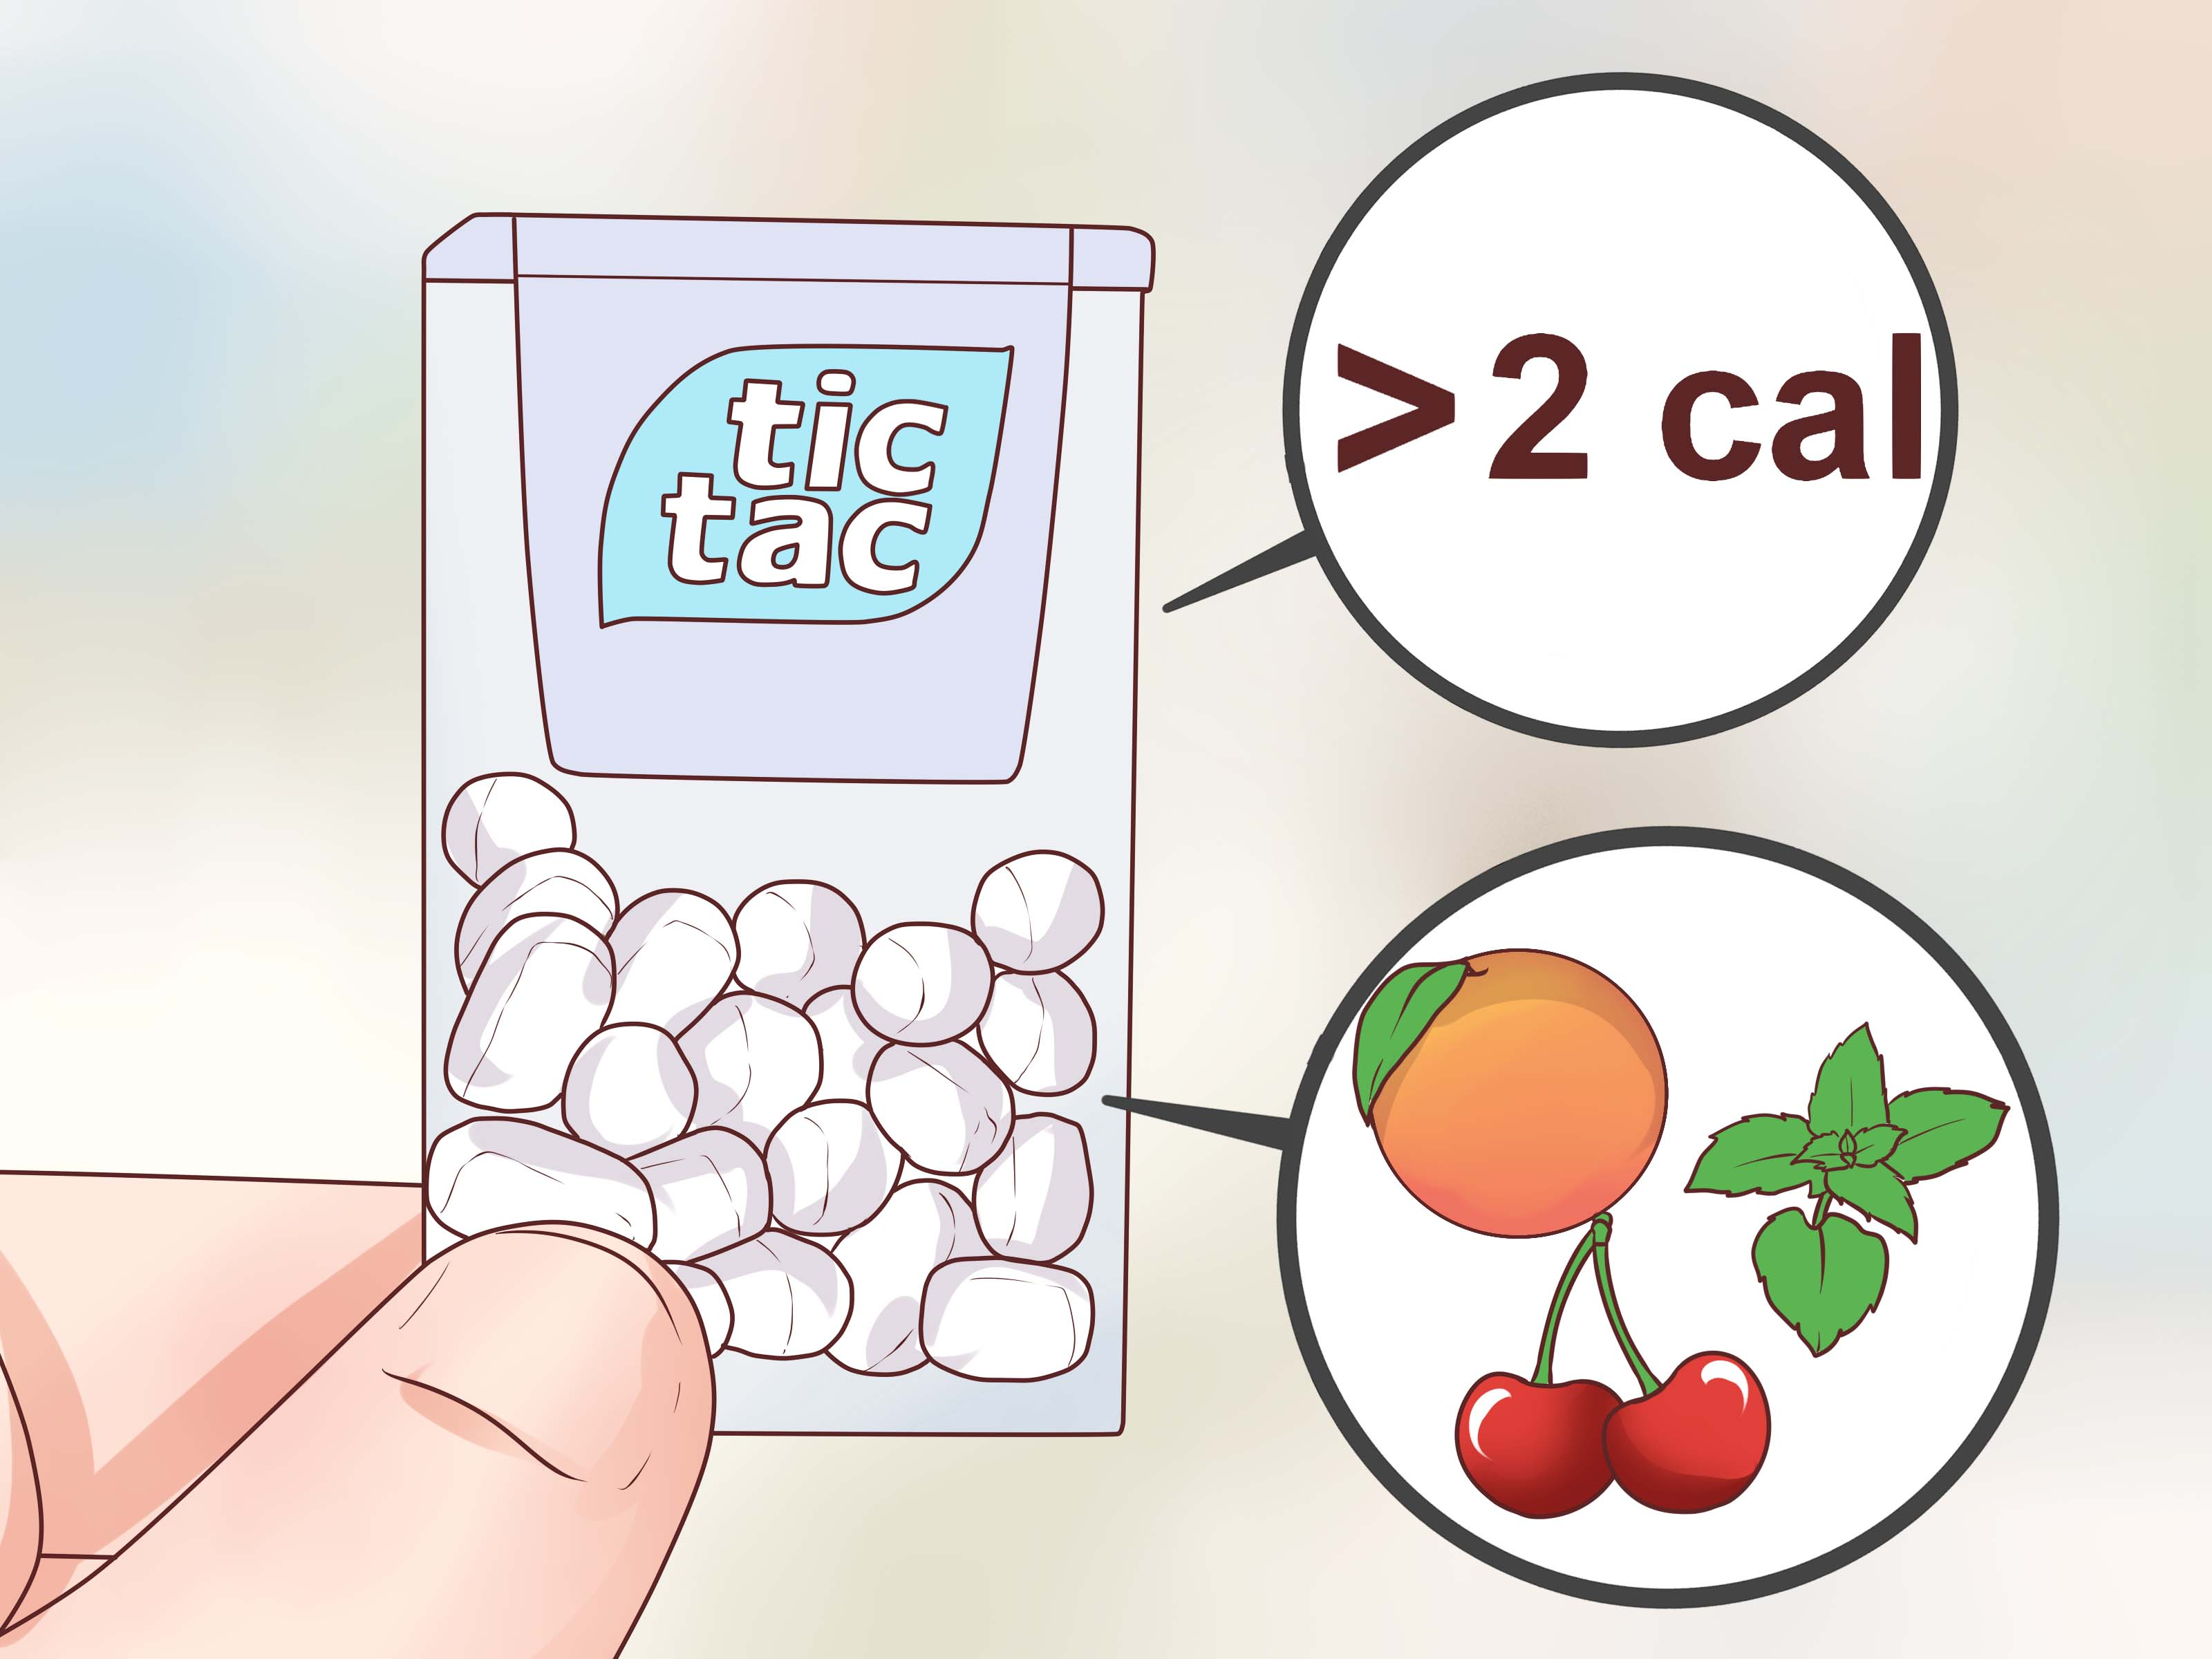 Tic tac candy clipart clip art royalty free library How to Eat a Tic Tac: 5 Steps (with Pictures) - wikiHow clip art royalty free library